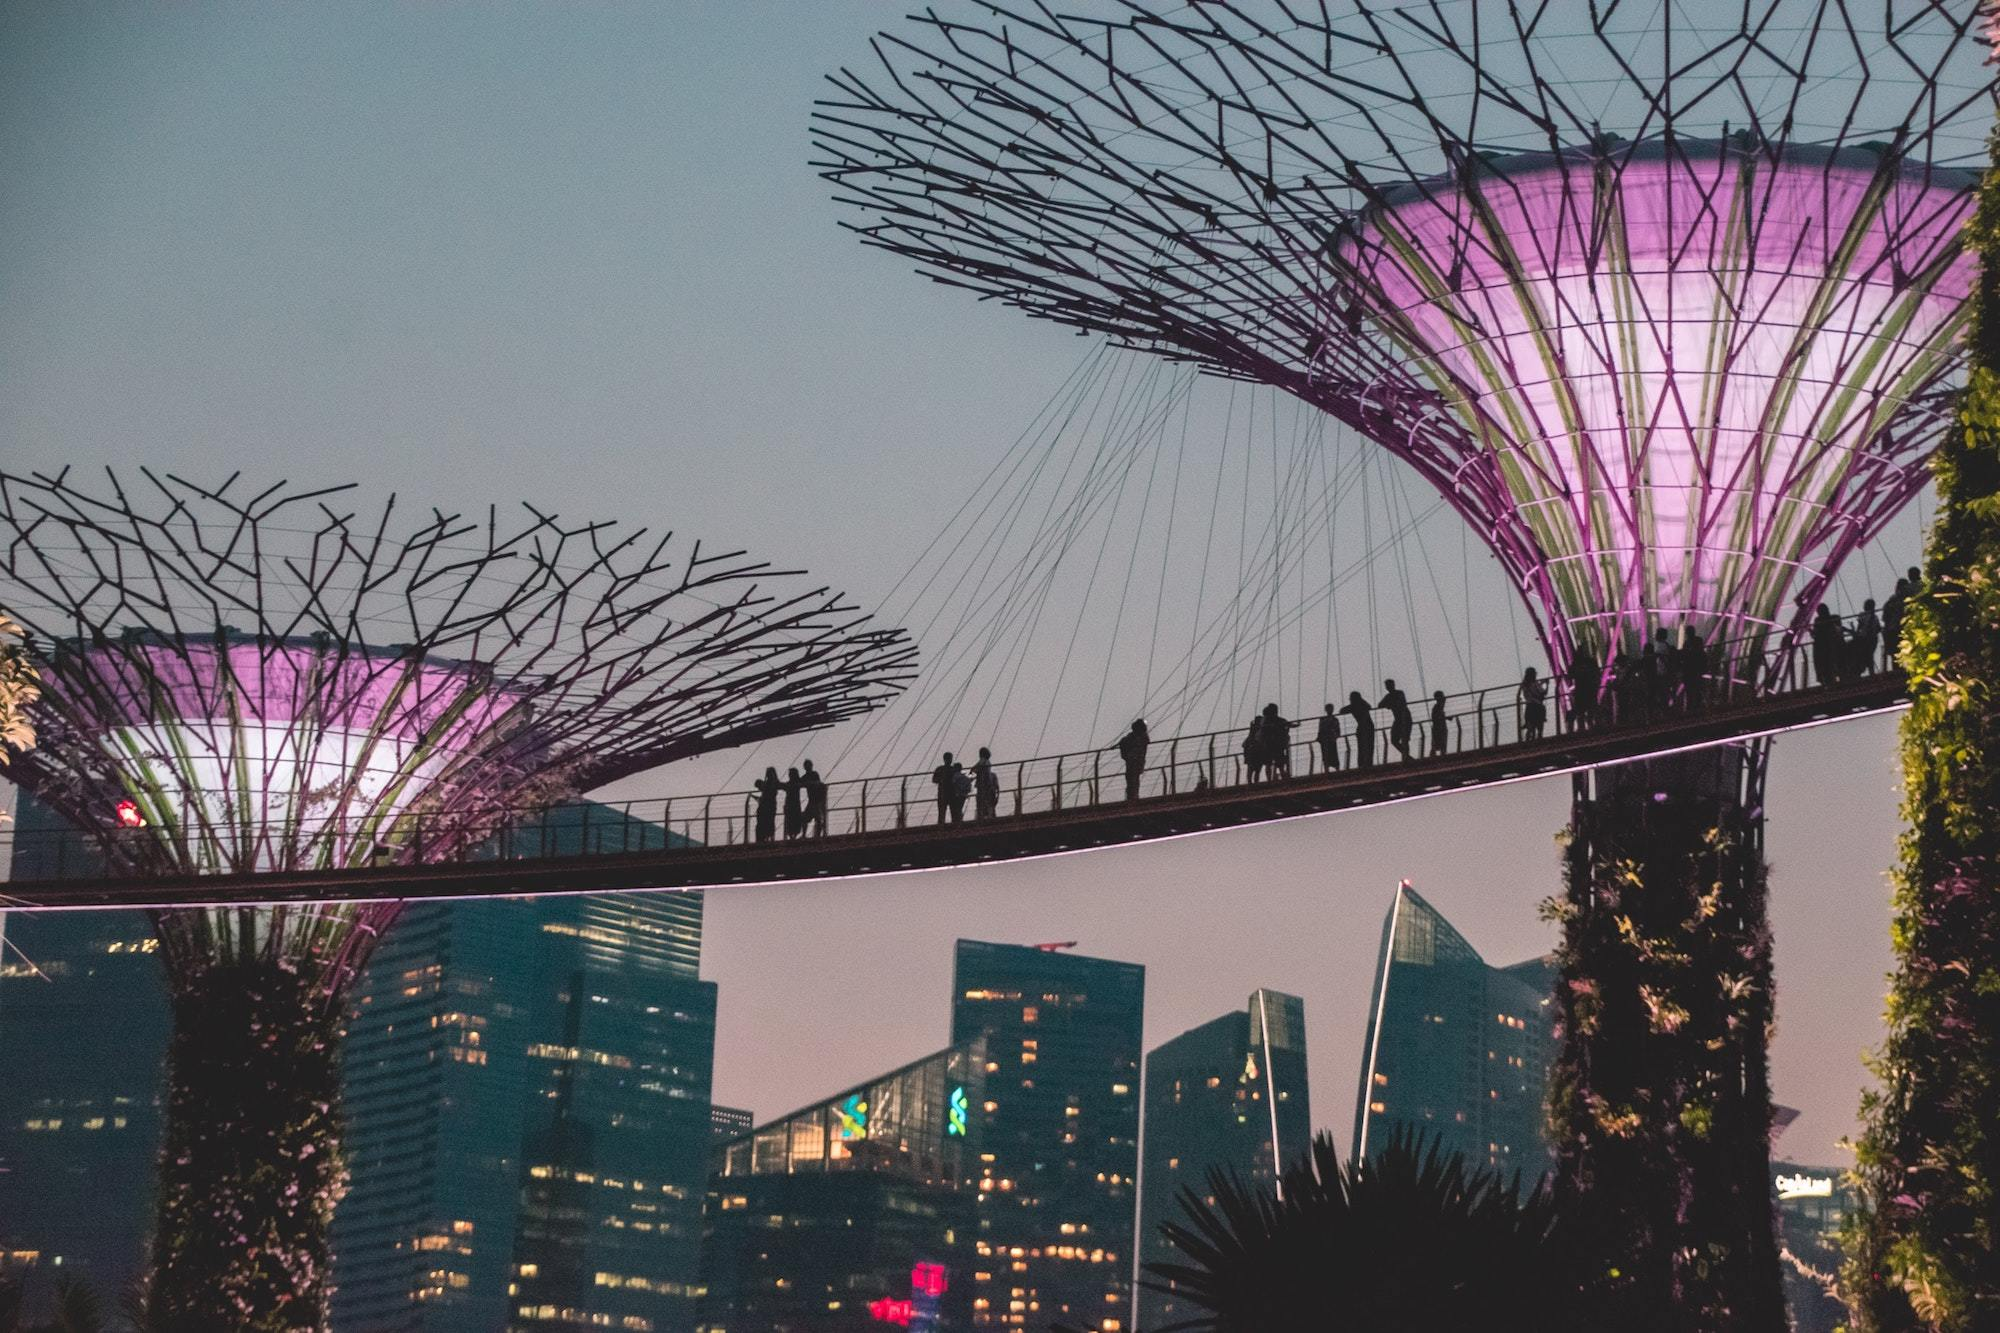 Singapore ranks seventh on the World's Best Cities list